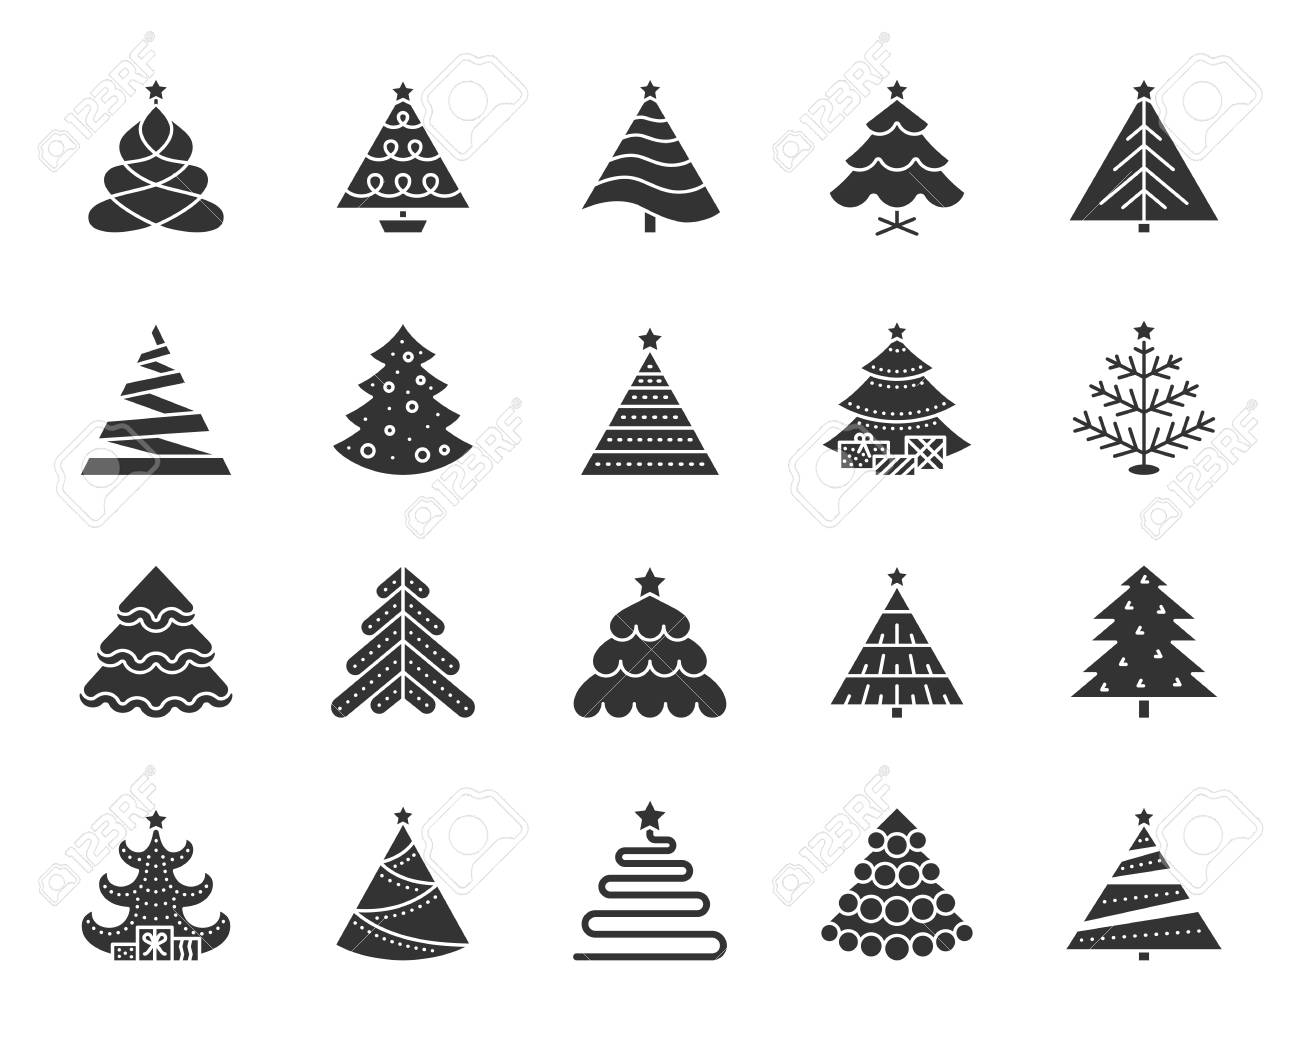 Christmas Tree Icon.Christmas Tree Icons Set Sign Kit Of Xmas Trendy Spruce Stylized